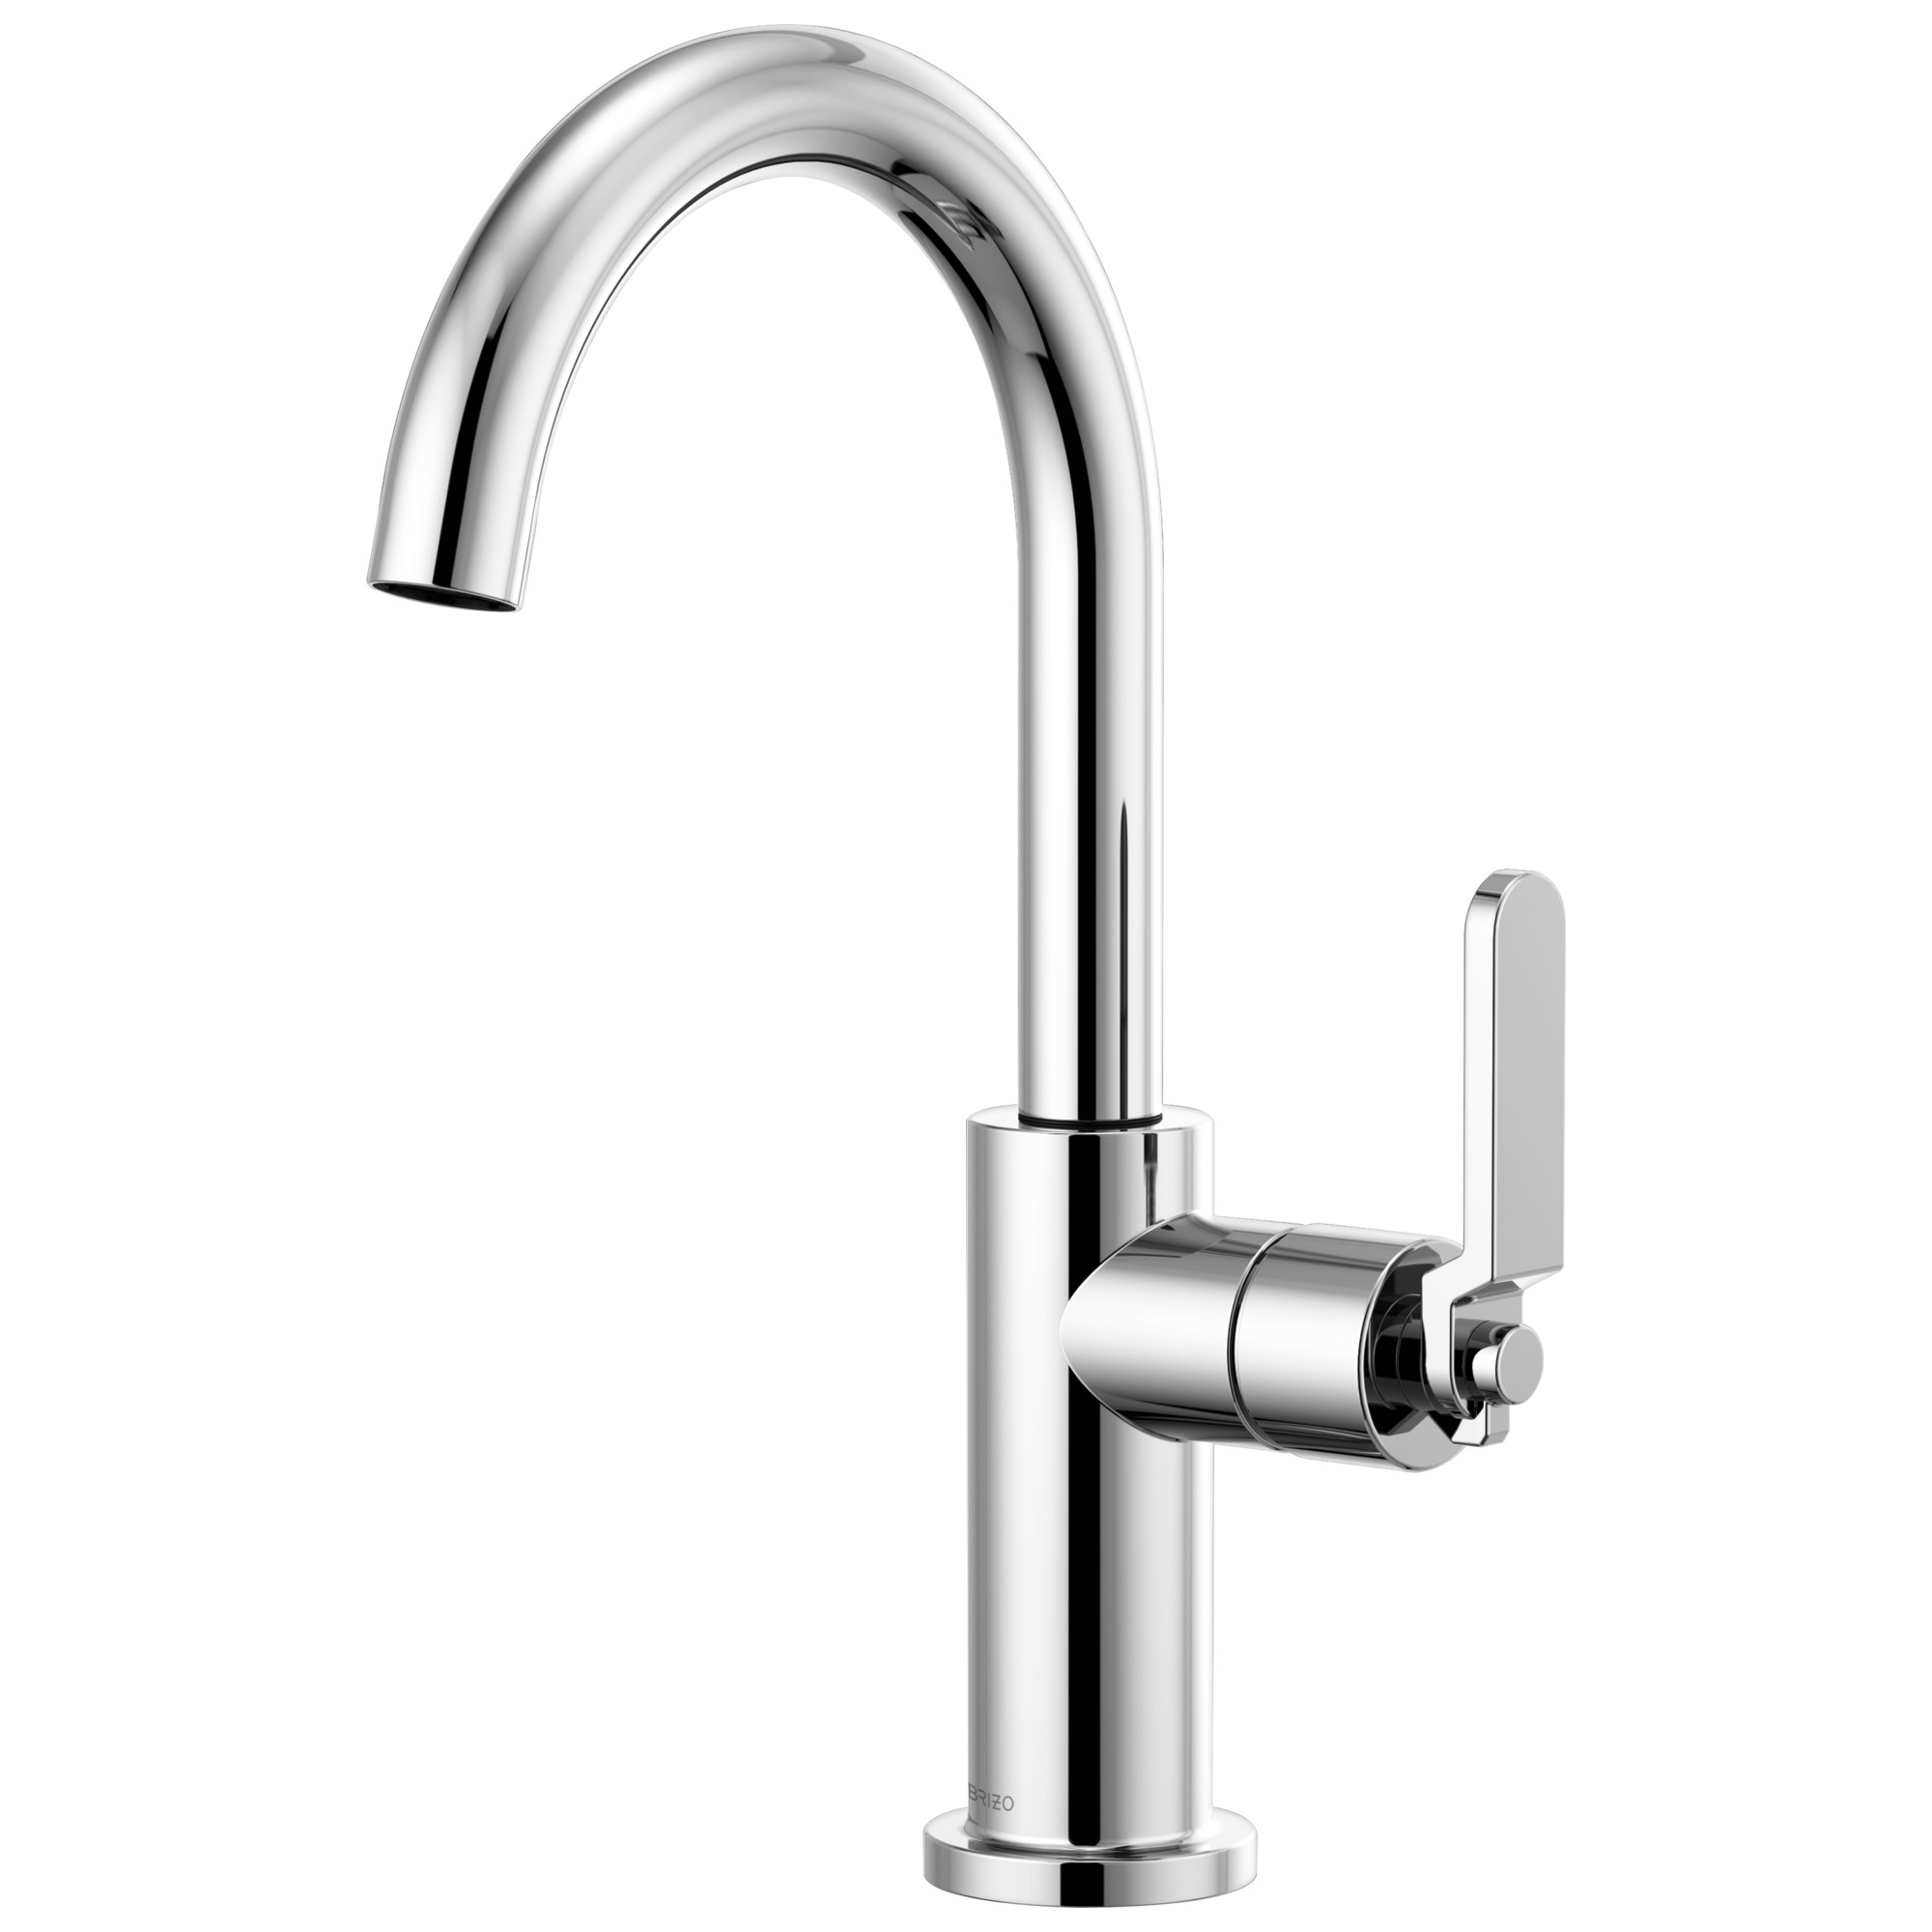 Brizo 61044LF-PC Litze Bar Faucet with Arc Spout and Industrial Handle - Chrome